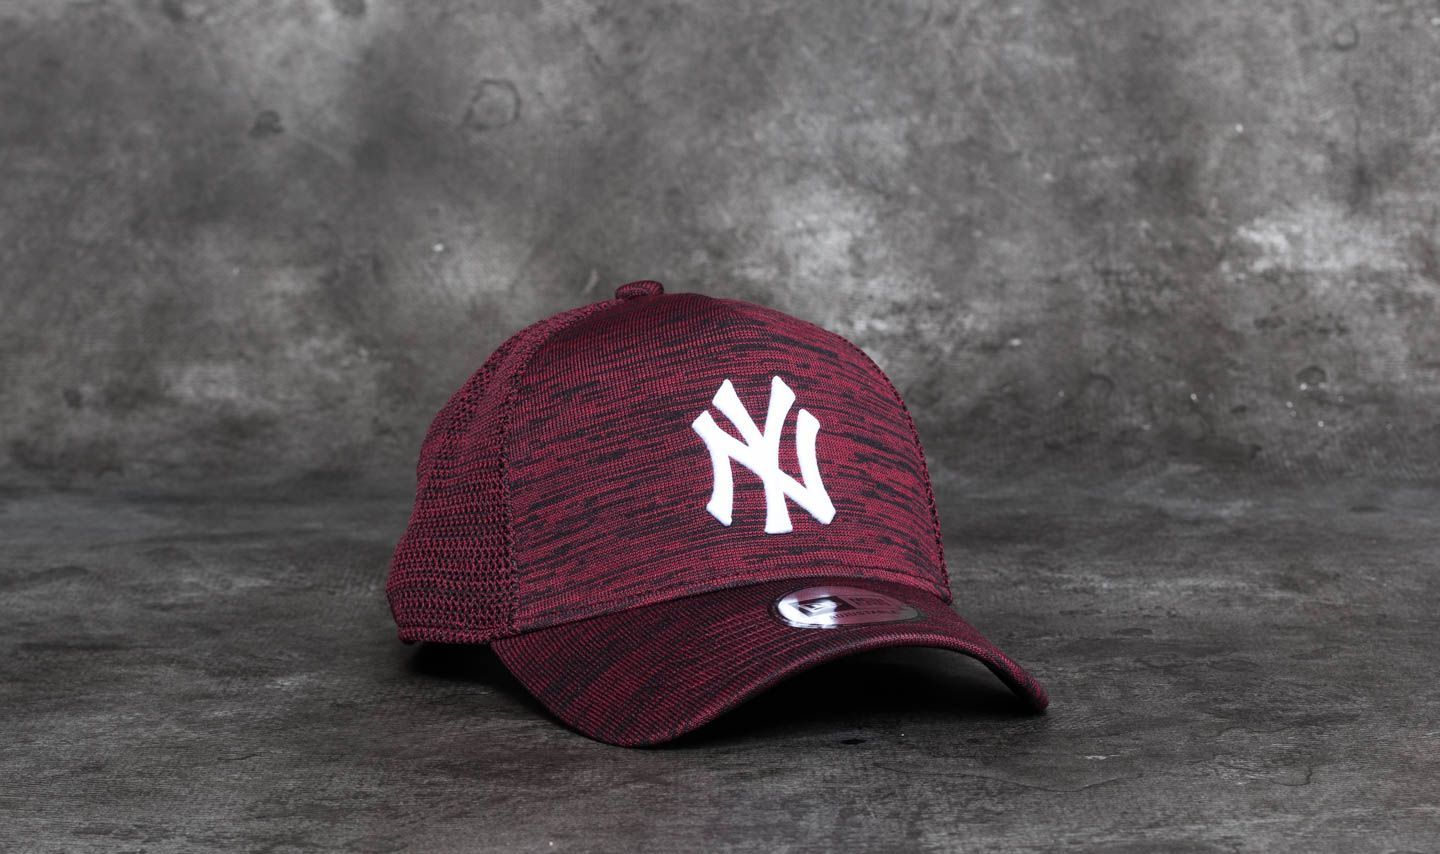 baa29cdbf2b New Era 9Forty Engineered Fit New York Yankees Cap Maroon  Black ...